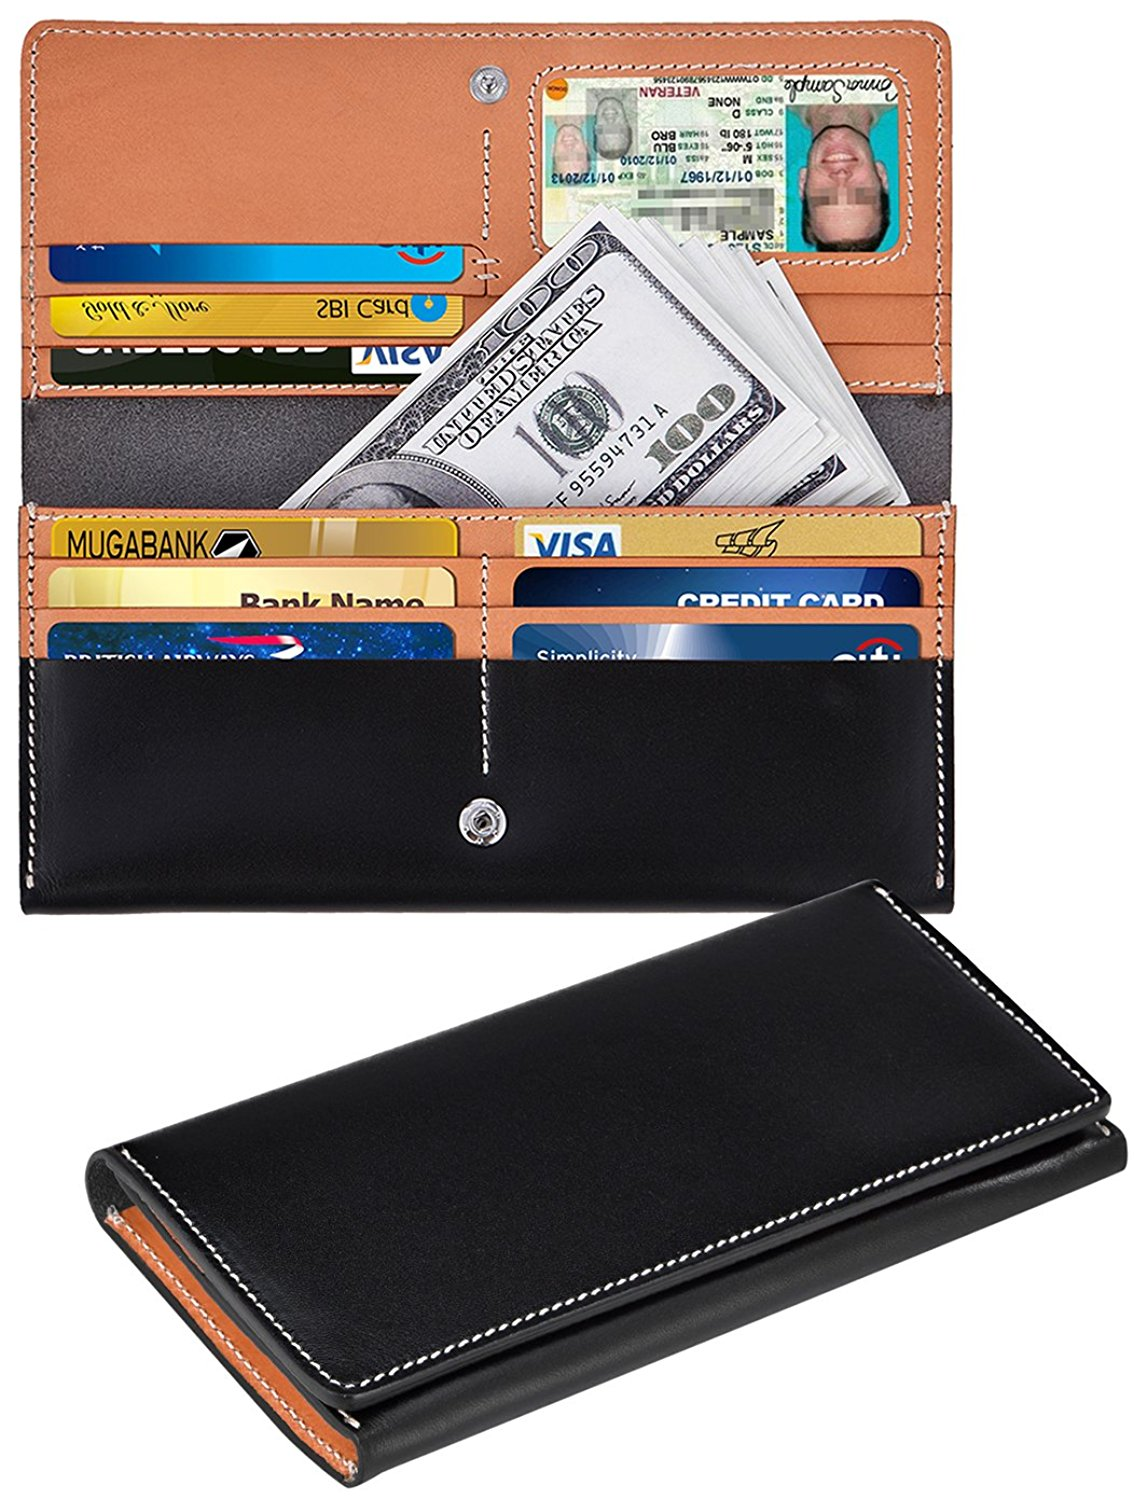 37ca2e593798b Get Quotations · Leather Long Wallet